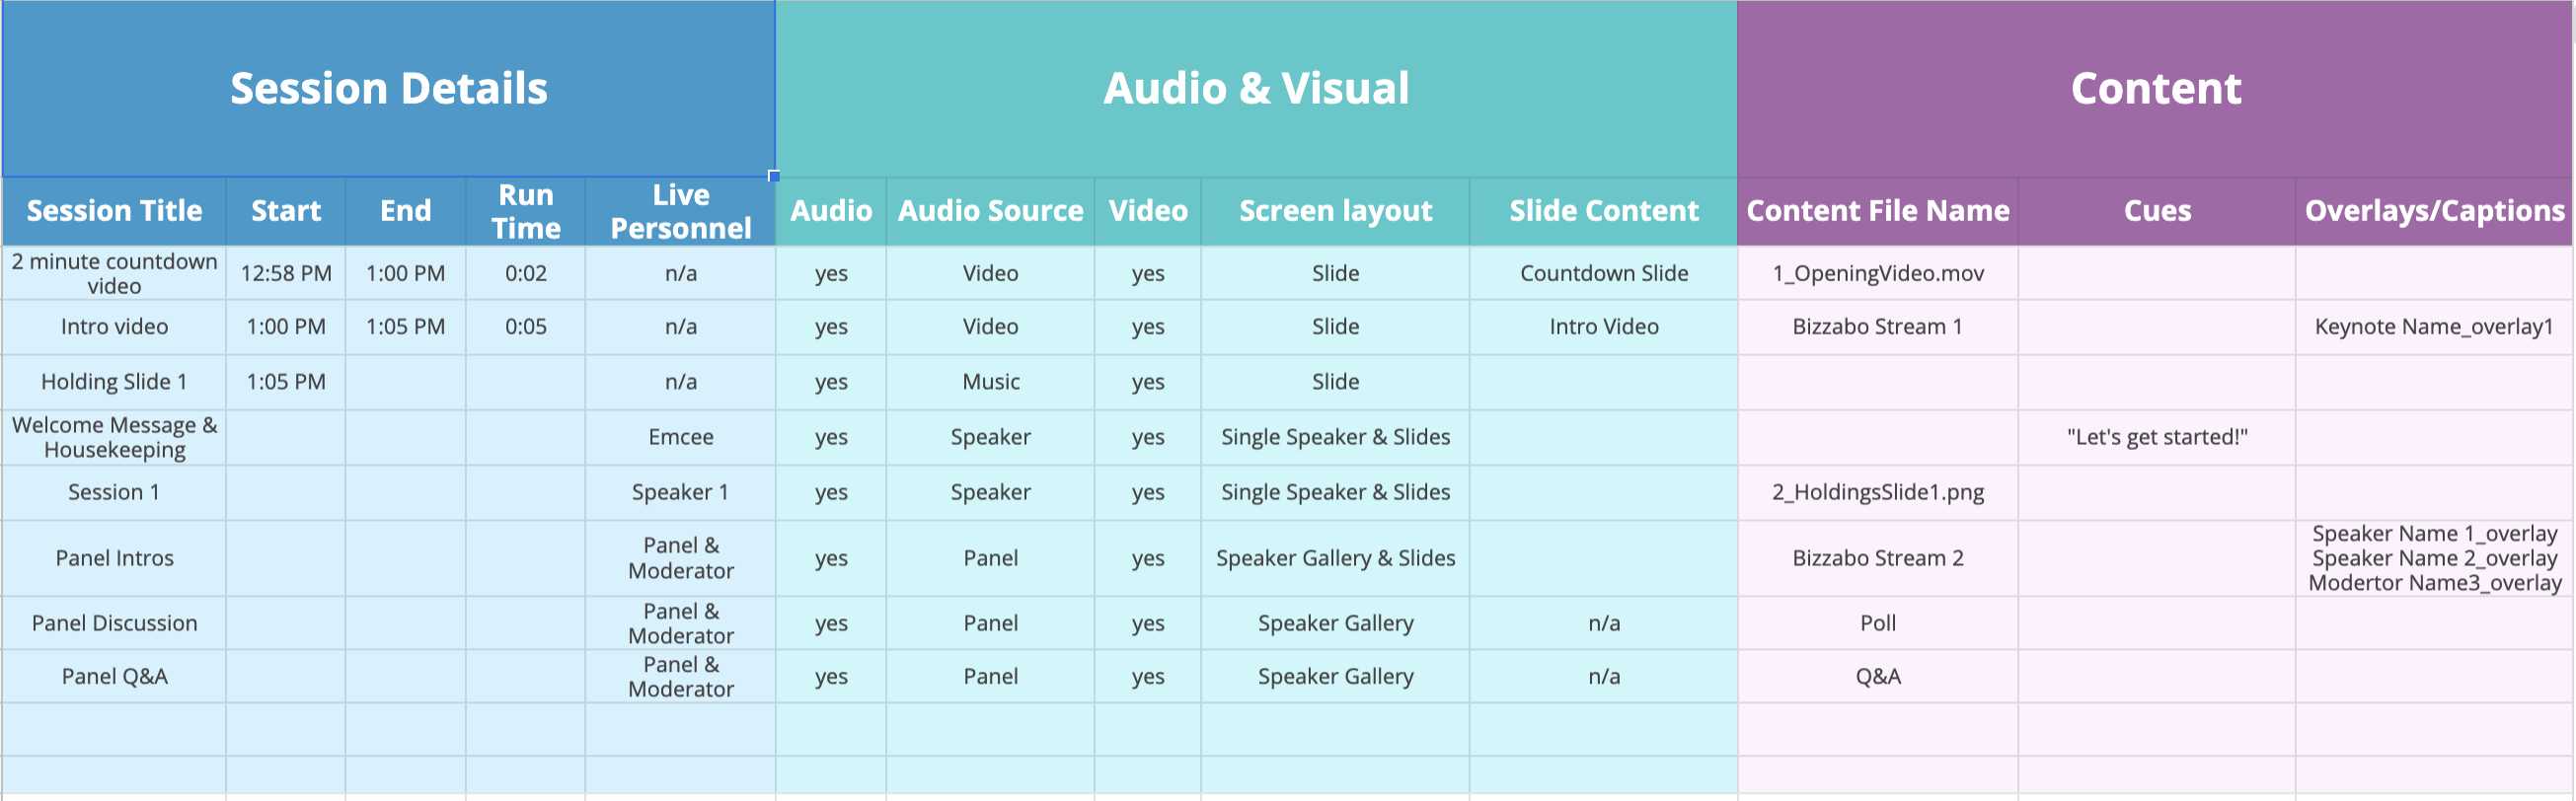 virtual event production glossary - run of show